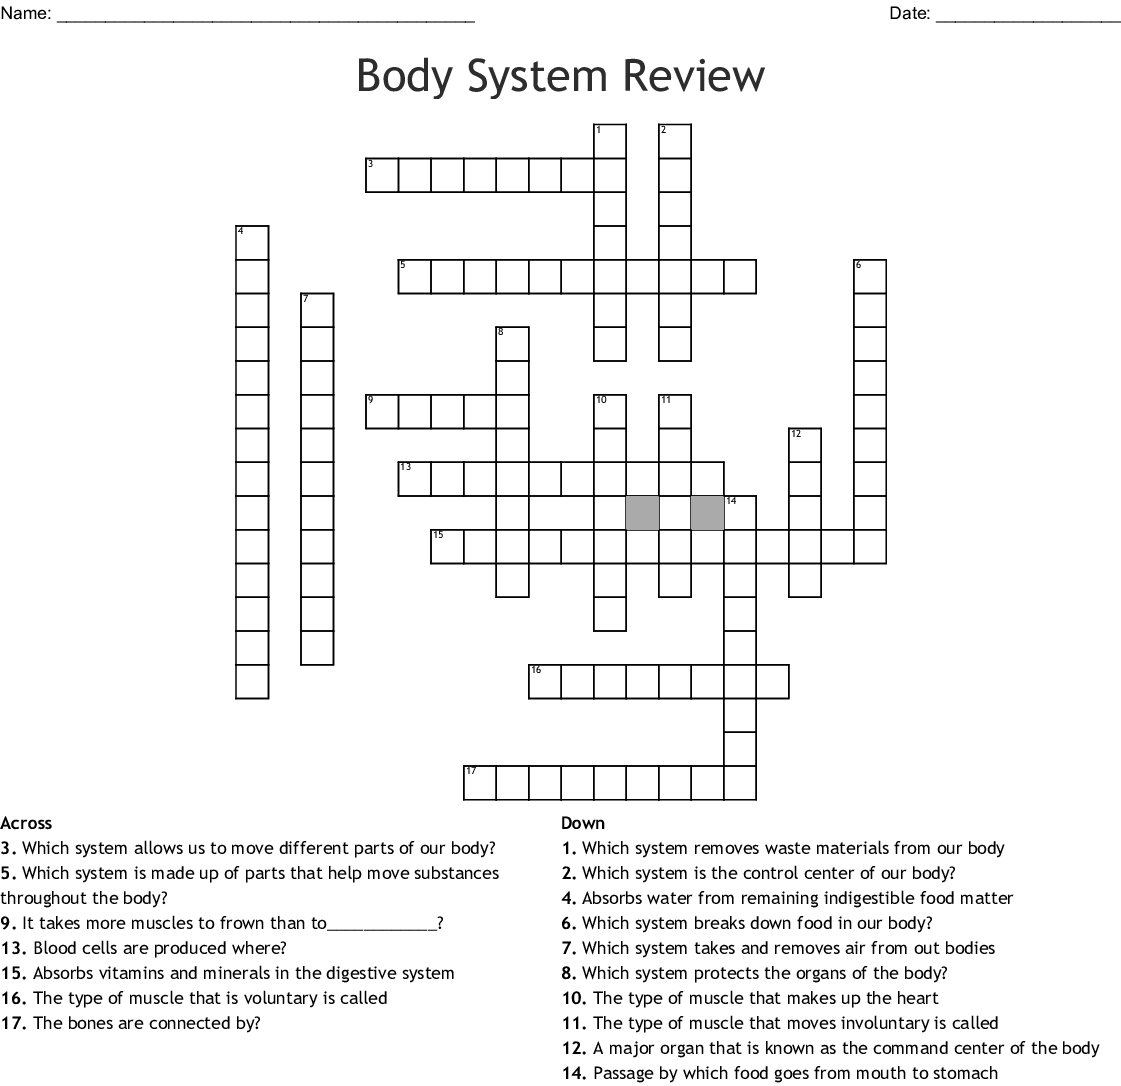 Human Body Systems Crossword Puzzle